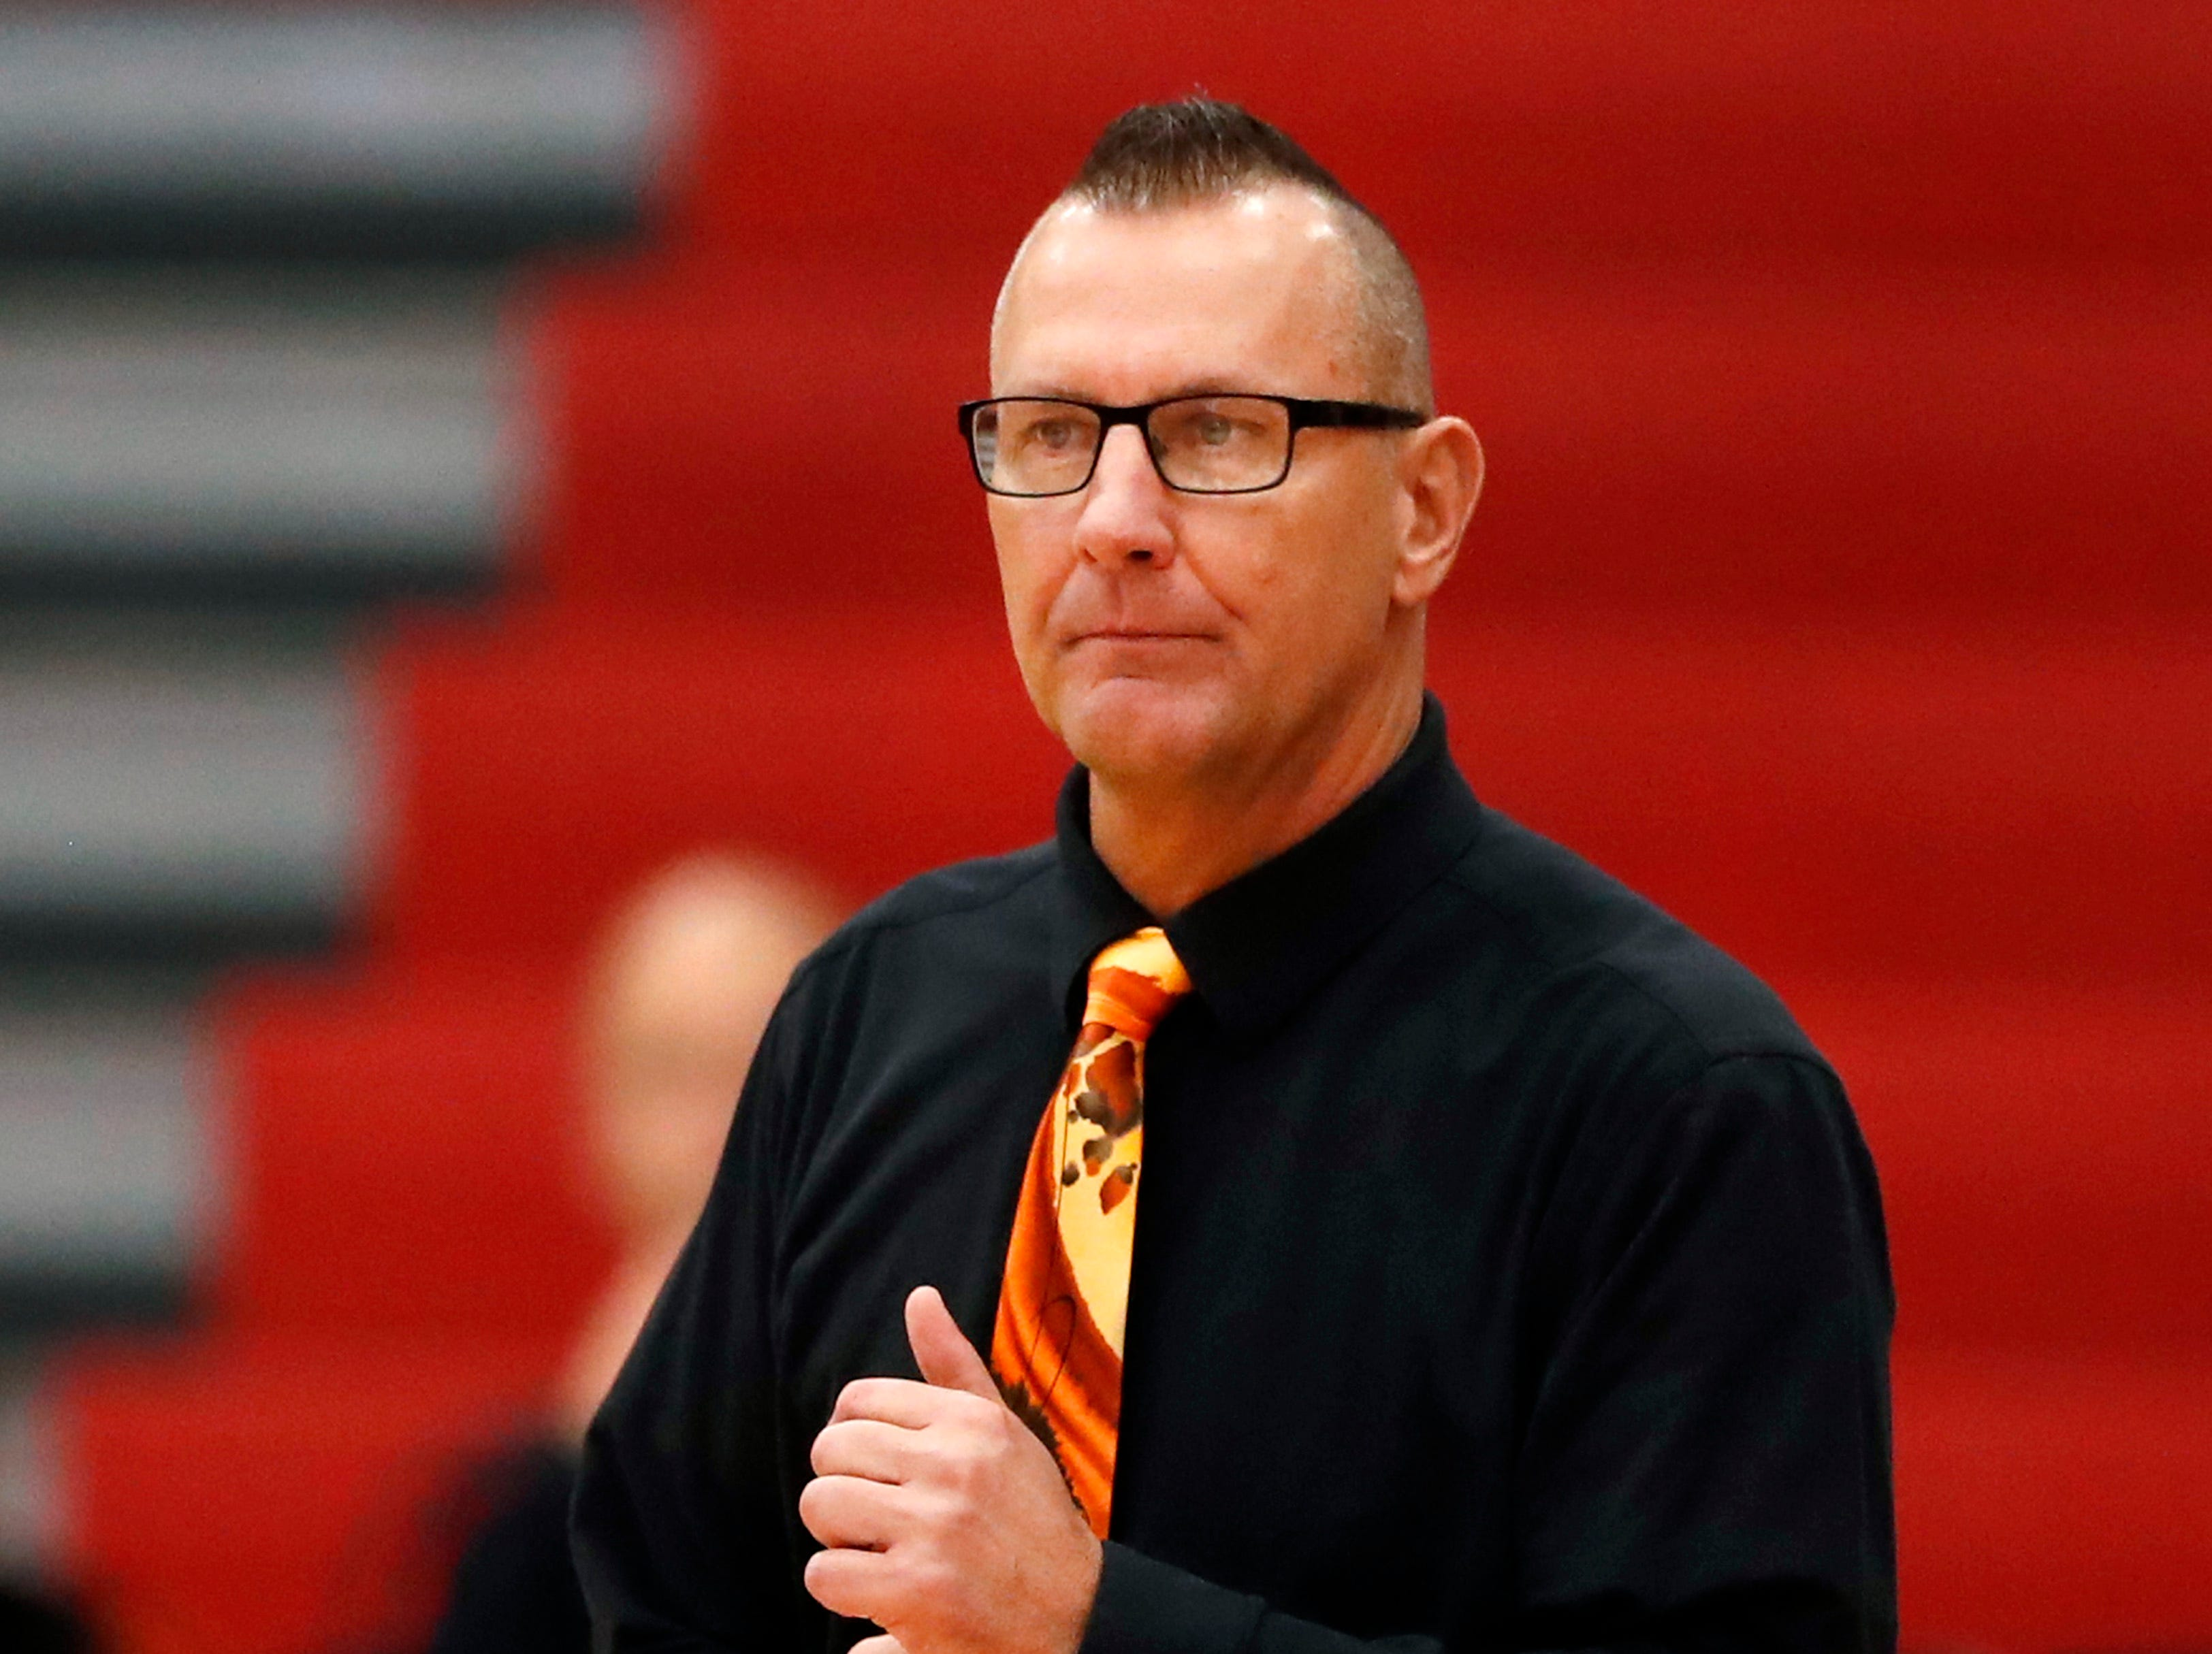 Kaukauna High School's head coach Craig Hawley during their game against Kimberly High School Friday, Dec. 7, 2018, in Kimberly, Wis.